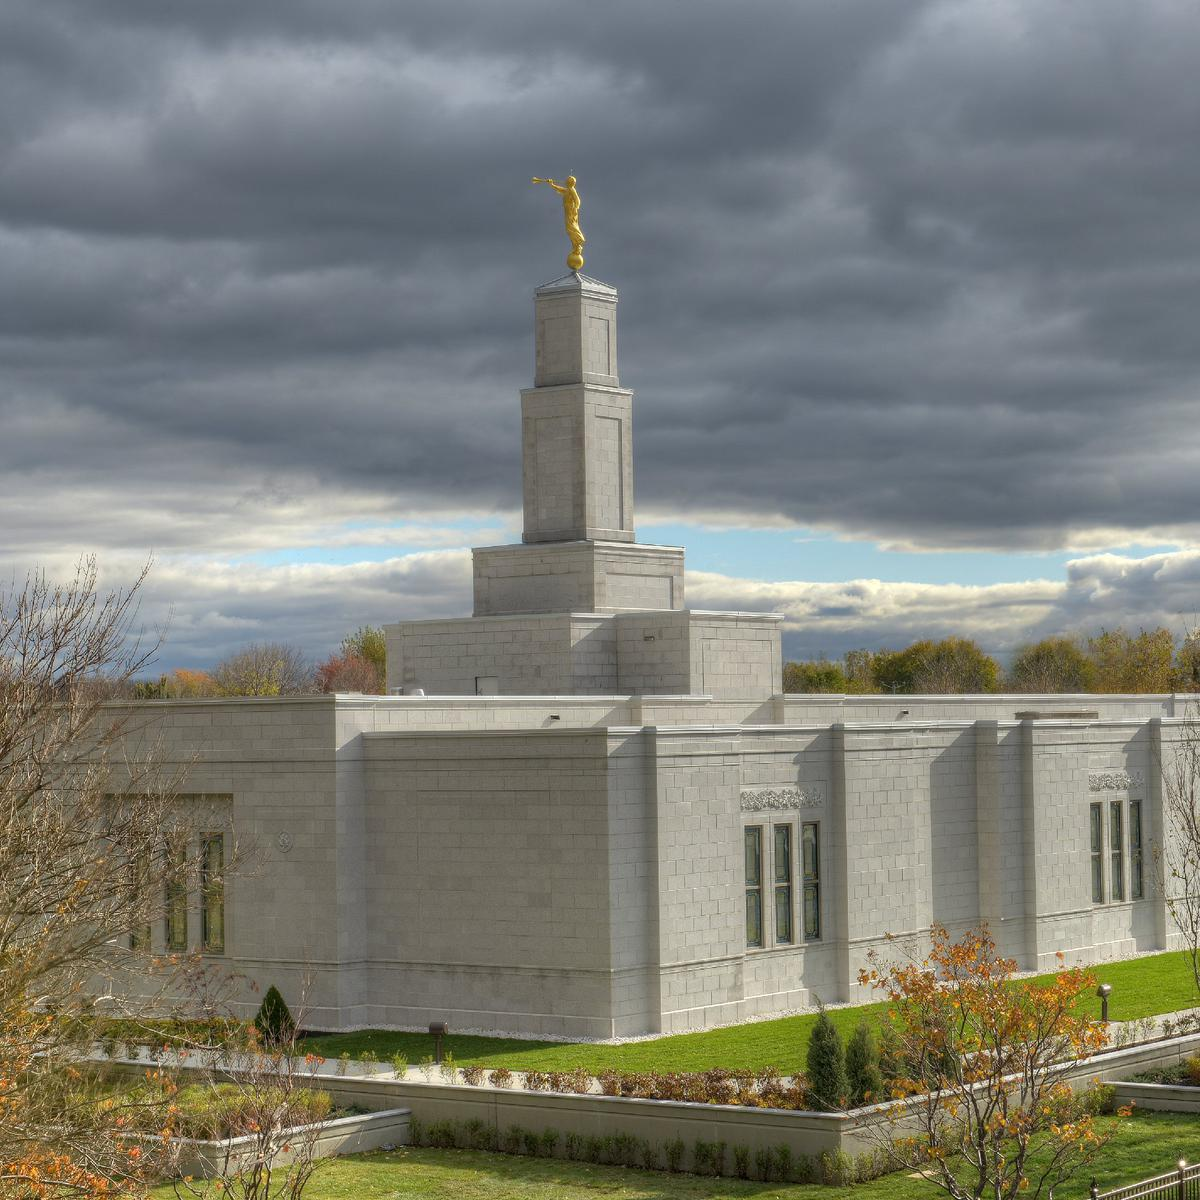 Image of the Montreal Mormon Temple